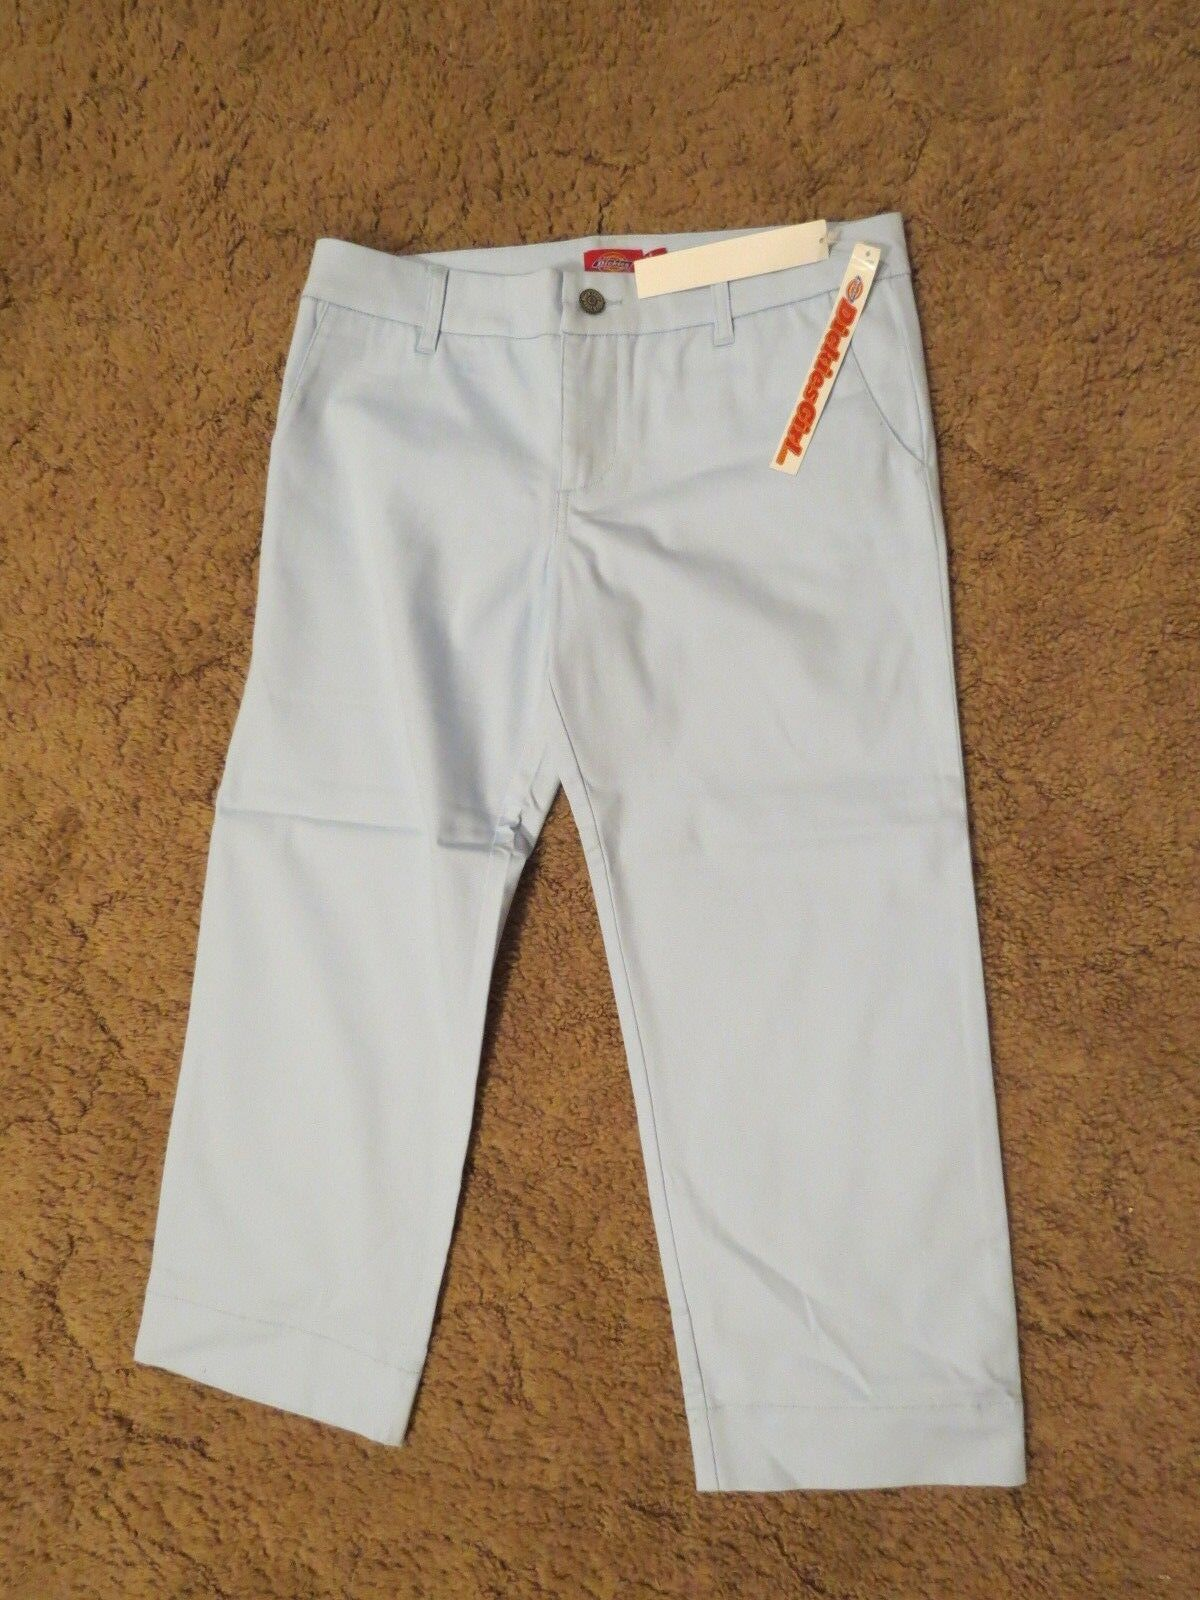 Primary image for Dickies Girls Stretch Capri pants, Size 9, Waist 34